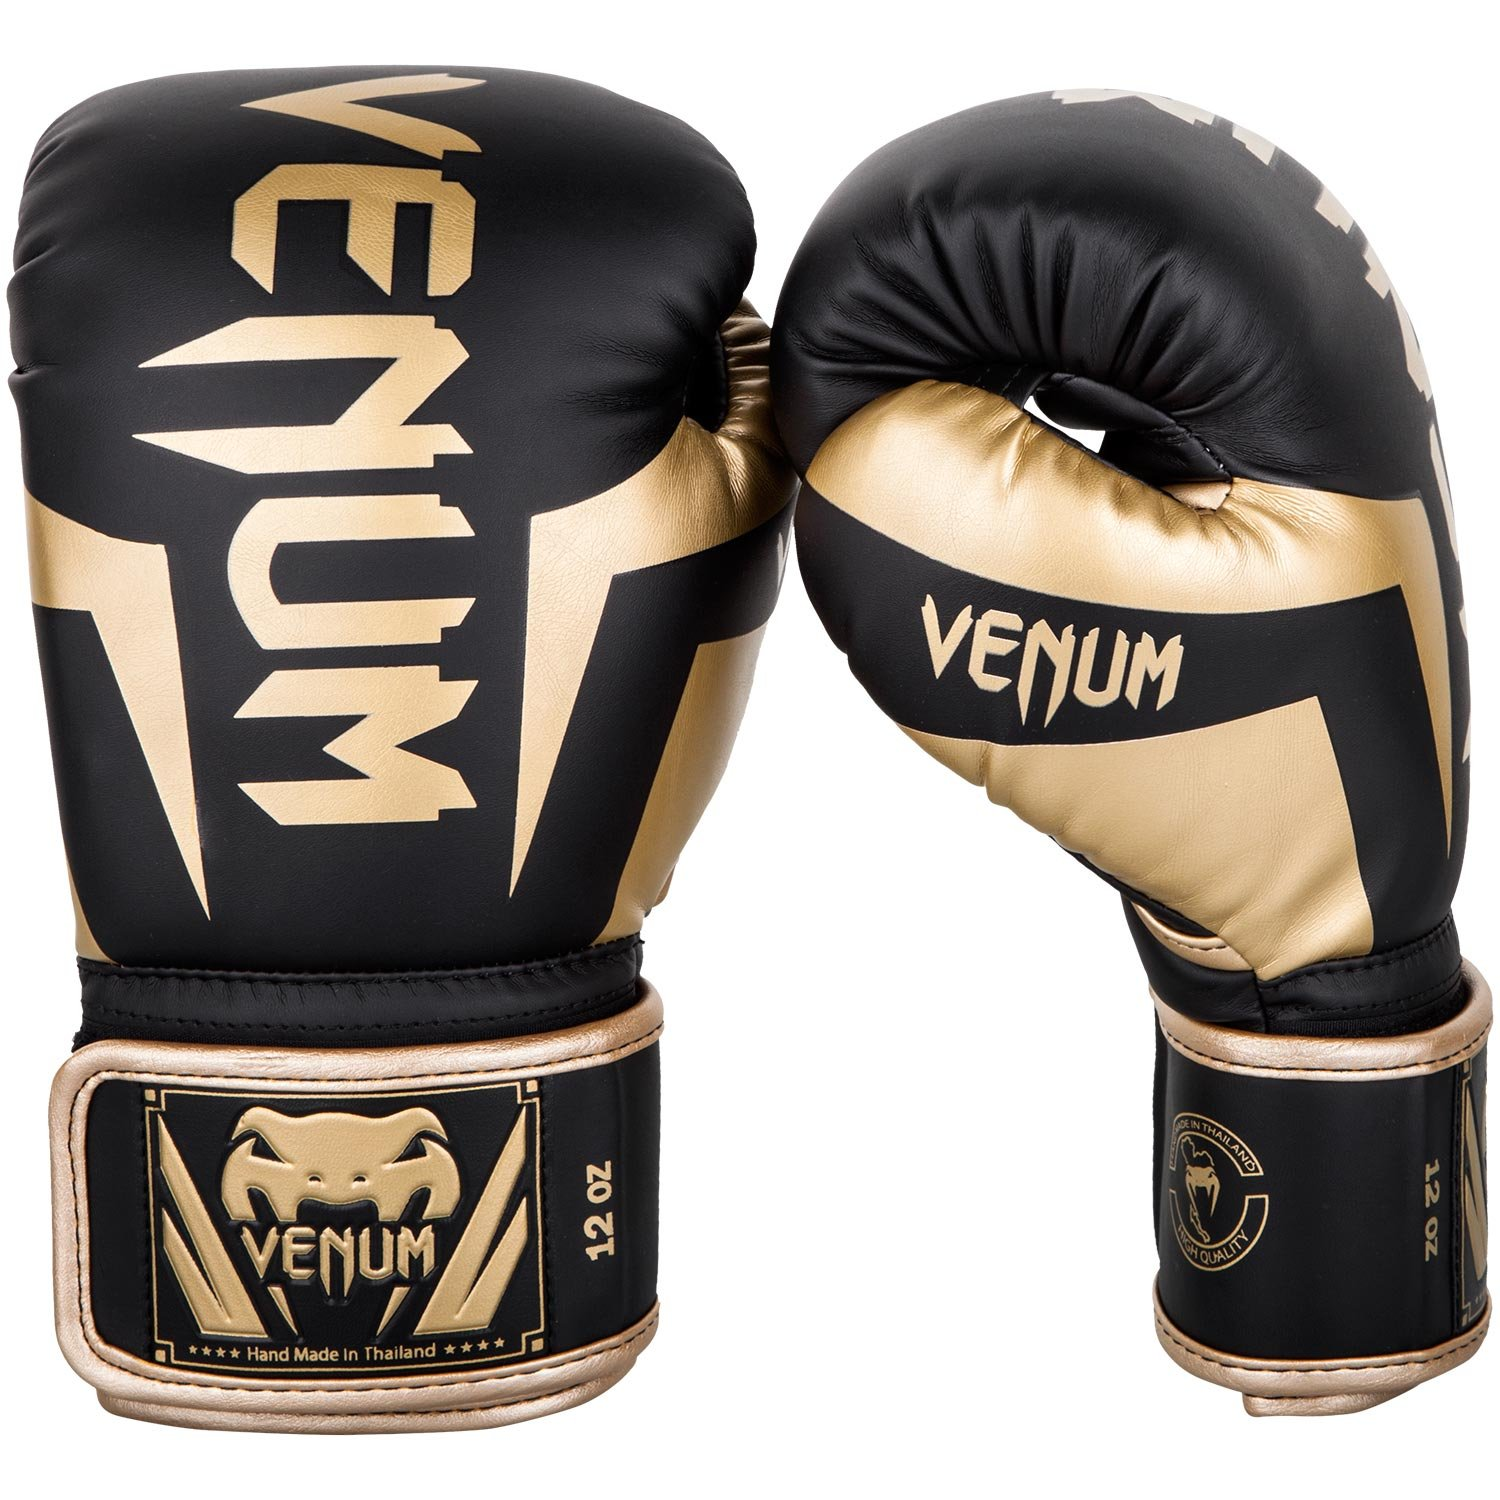 53fd881d9 Amazon.com   Venum Elite Boxing Gloves   Sports   Outdoors